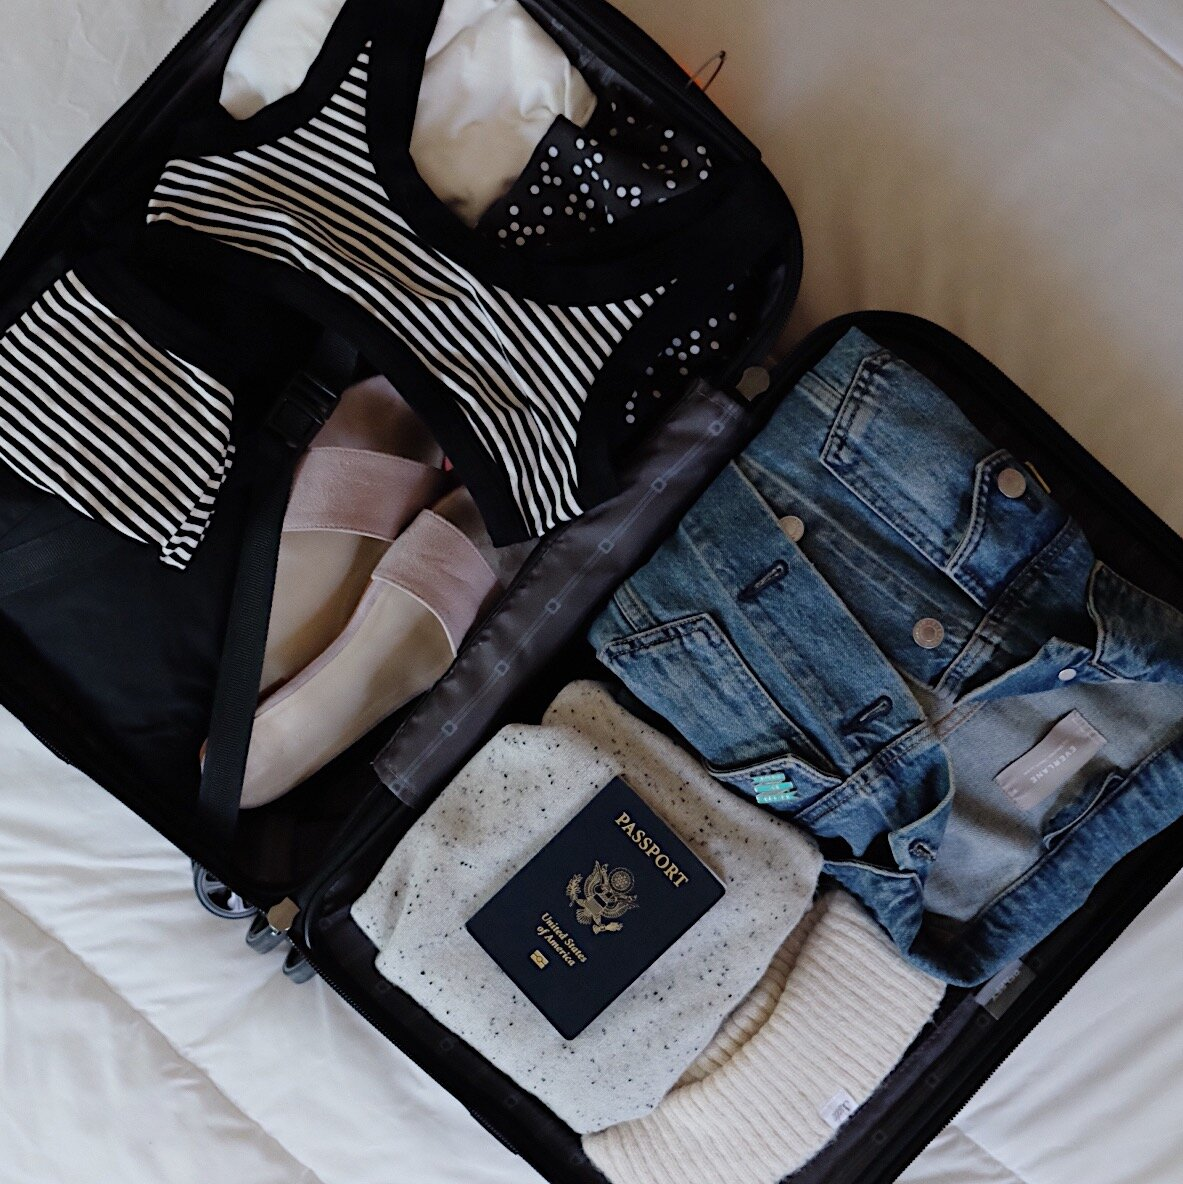 Packing for a weekend away // A Week Of Minimalist Travel Outfits With Ellie Hughes From Selflessly Styled on The Good Trade